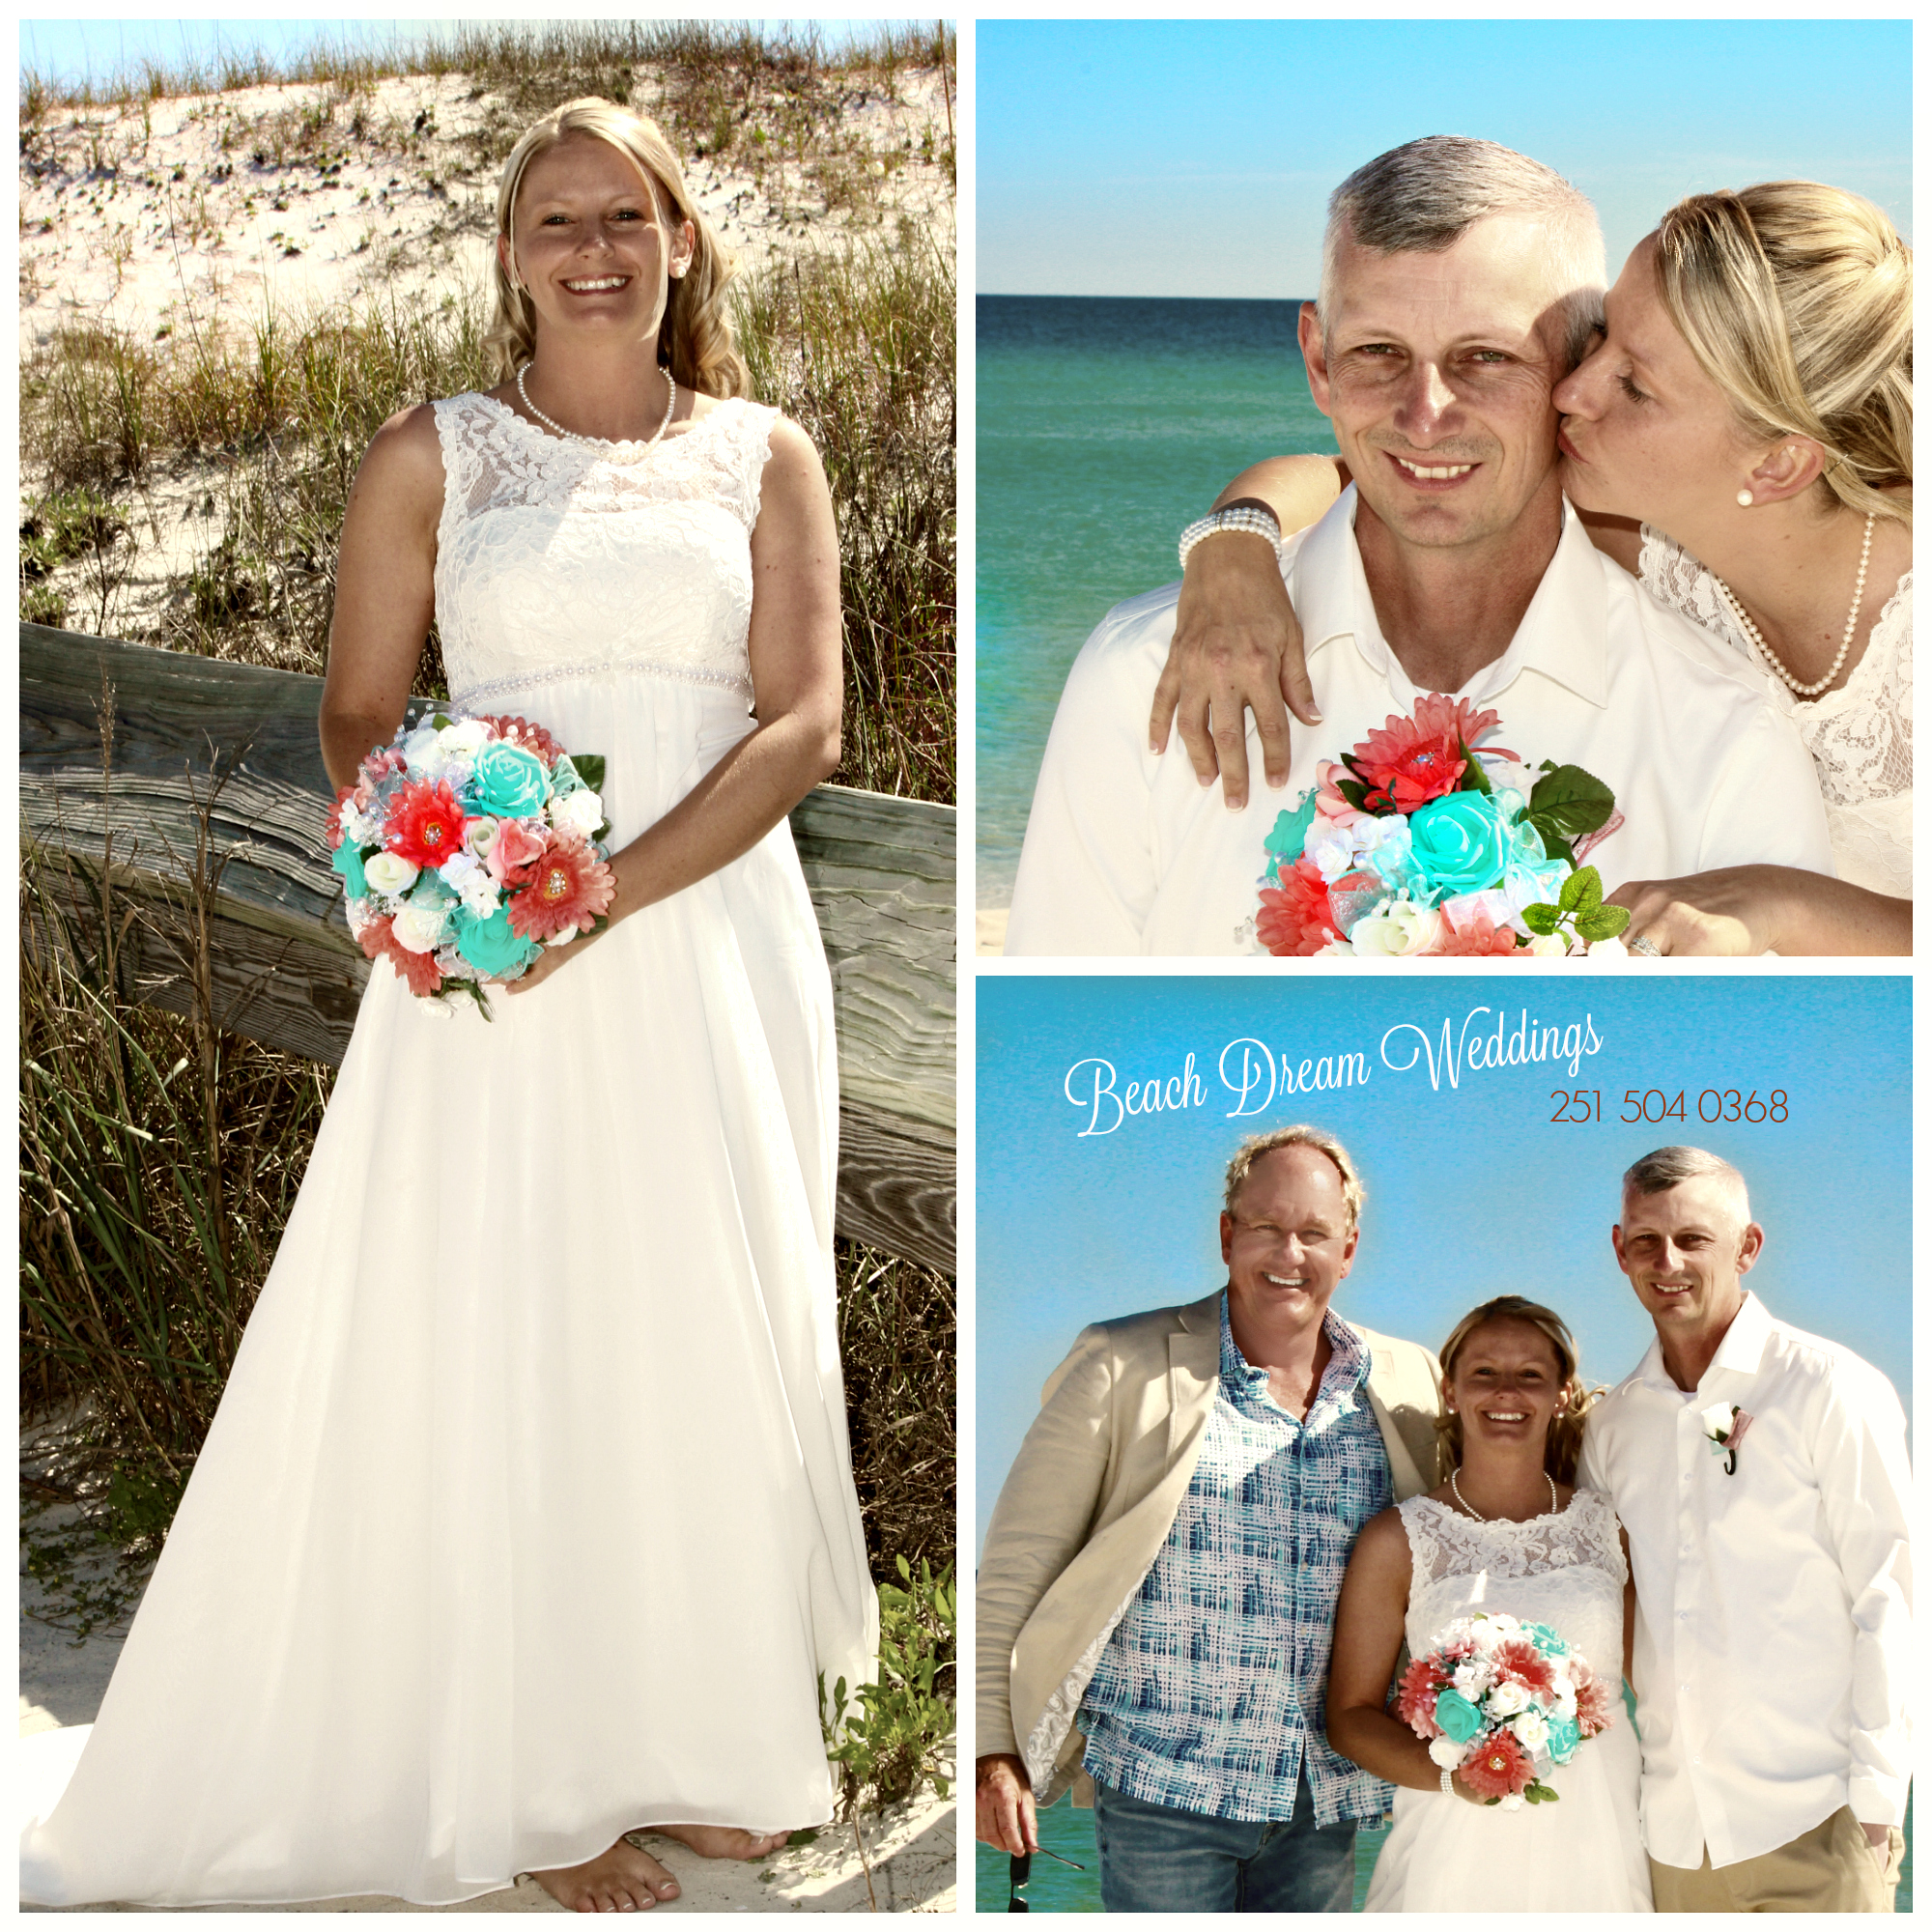 Best beach weddings in Alabama